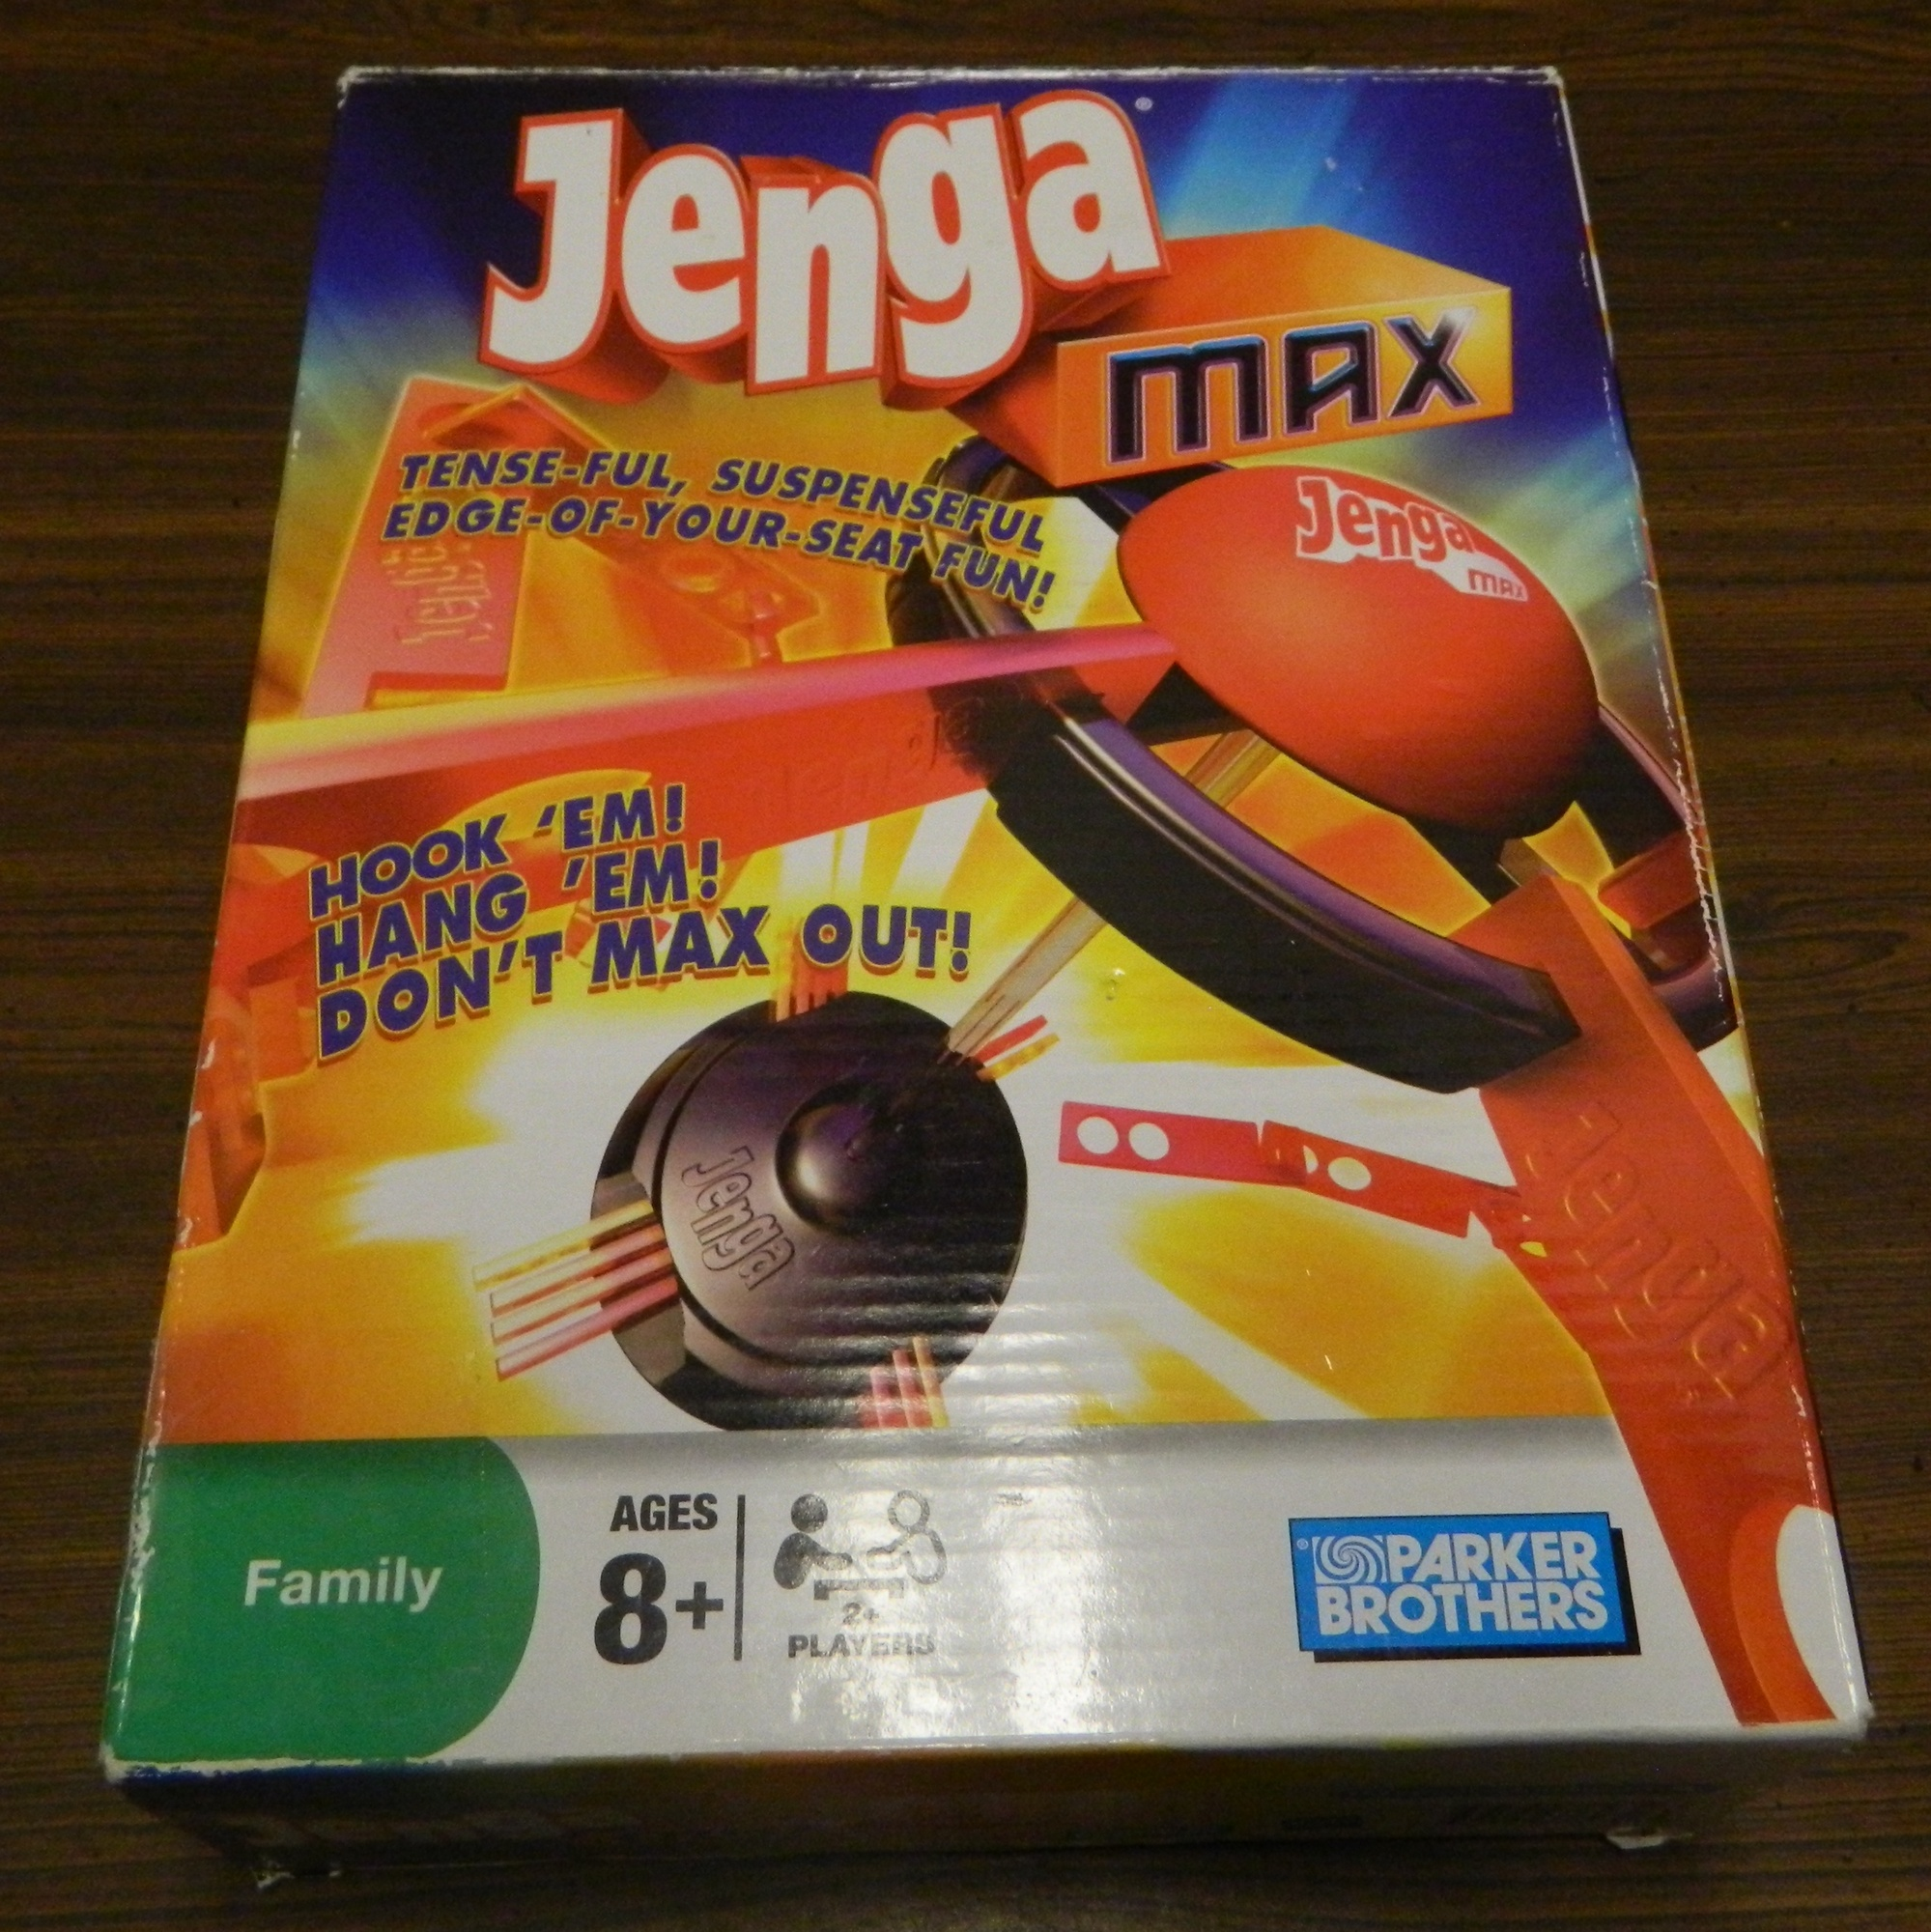 Box for Jenga Max